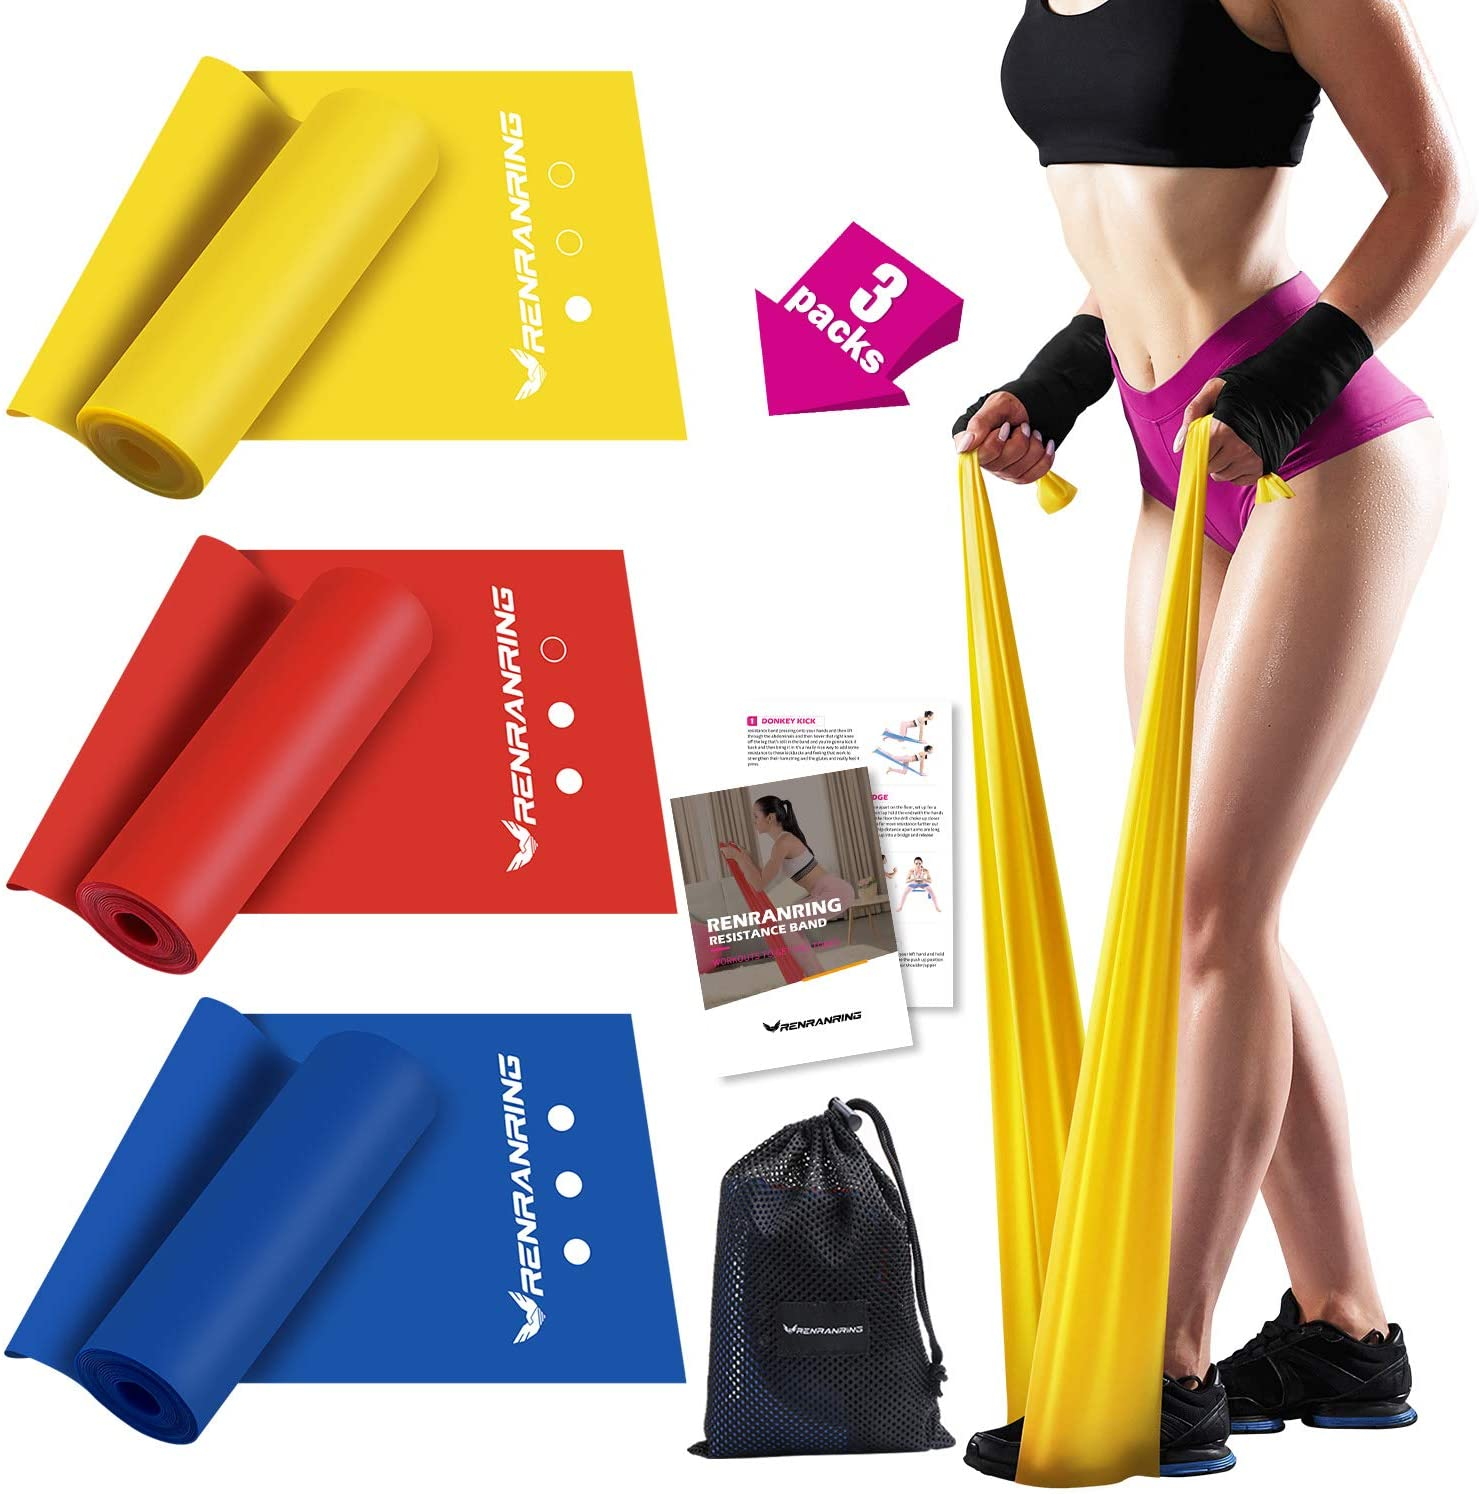 TPE / Latex Yoga Band Exercise Rubber Resistance Workout Fitness Theraband